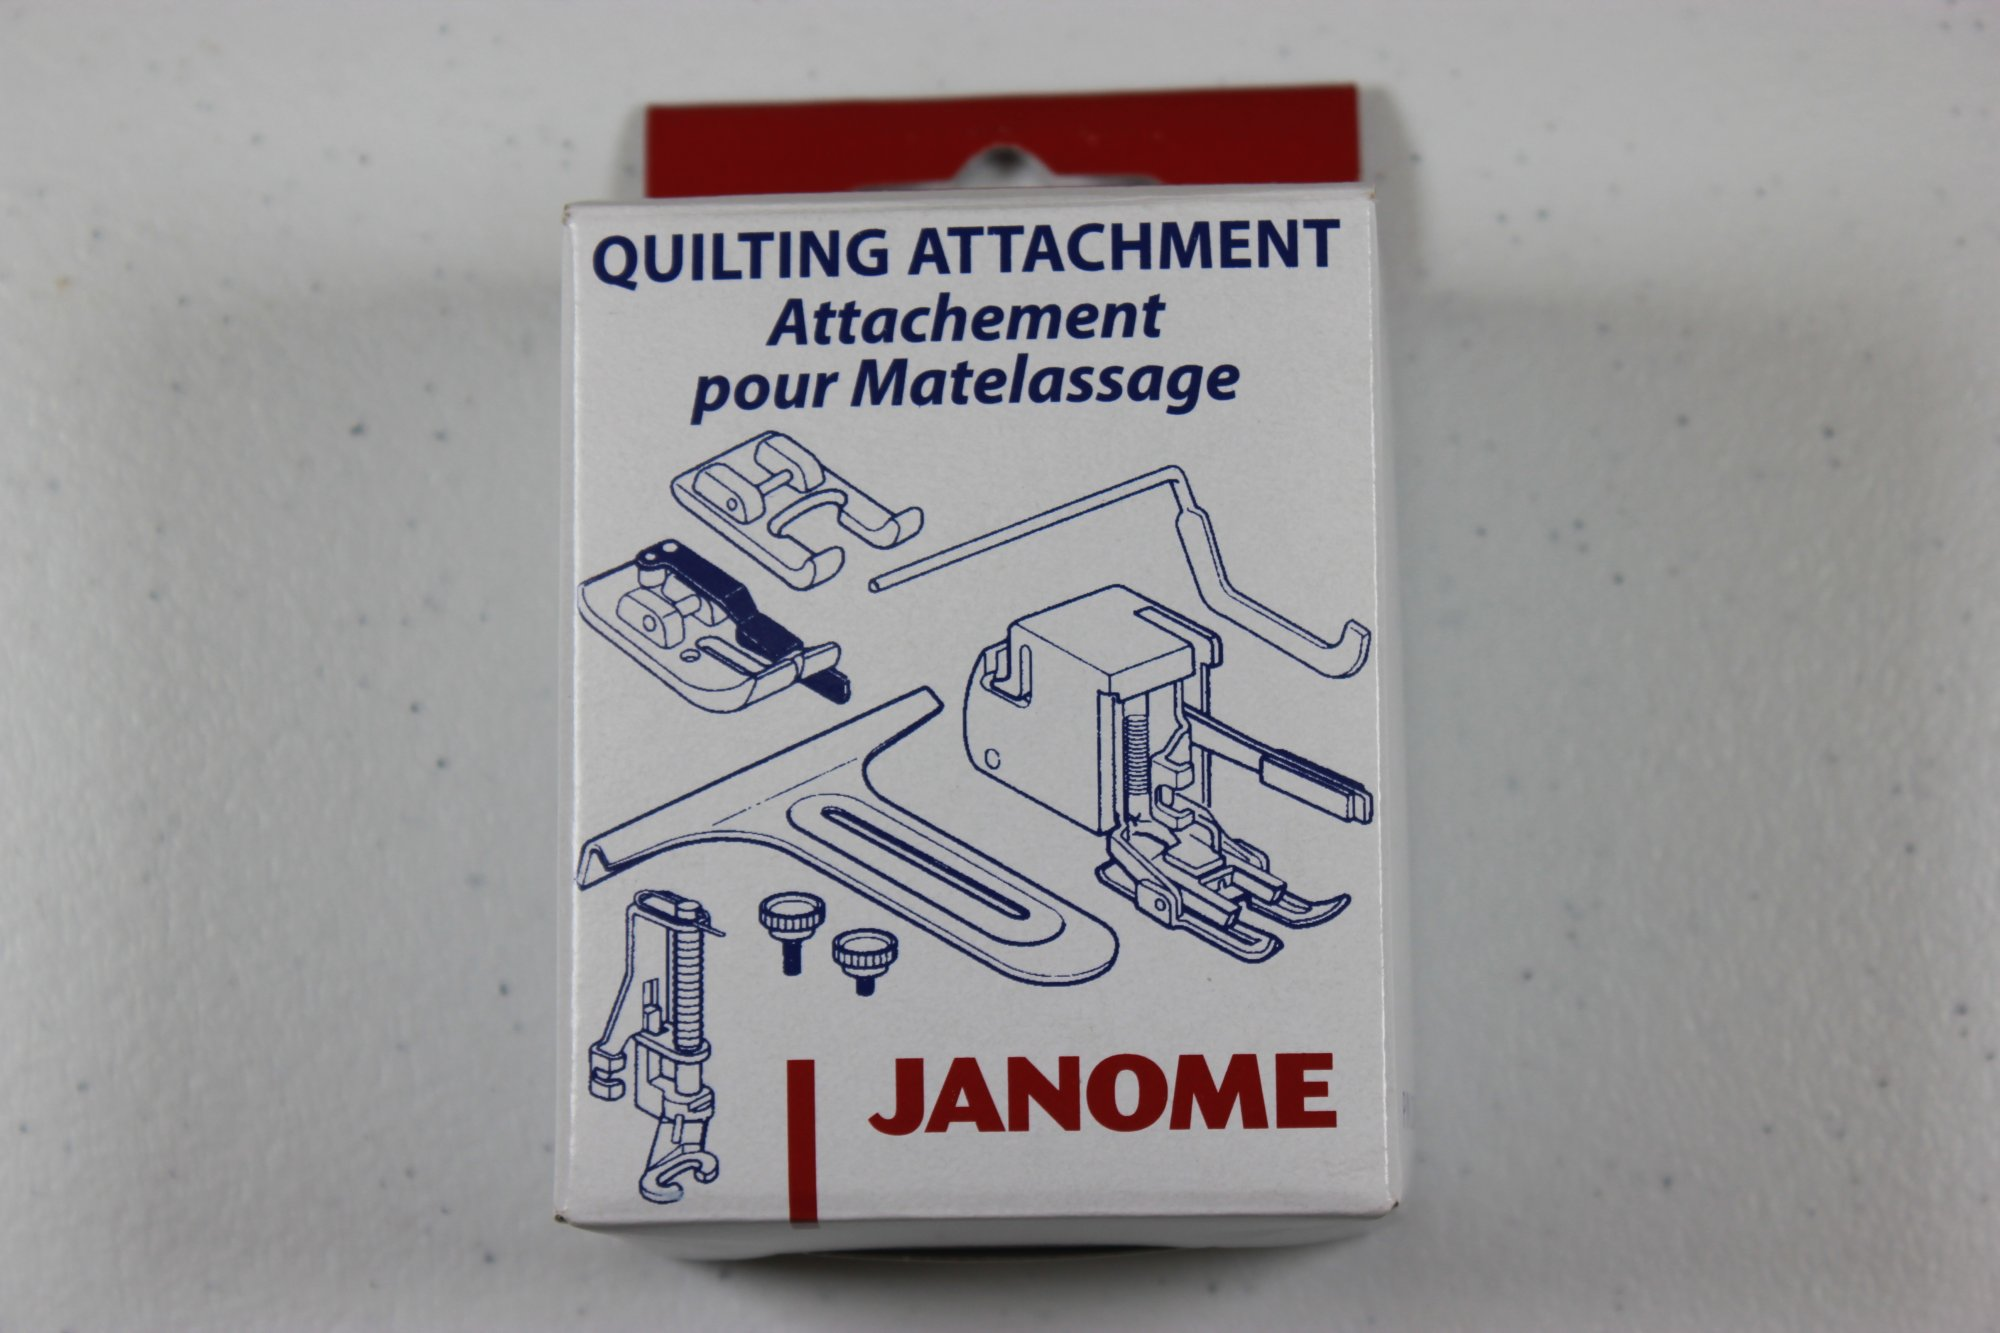 Janome Quilting Attachments